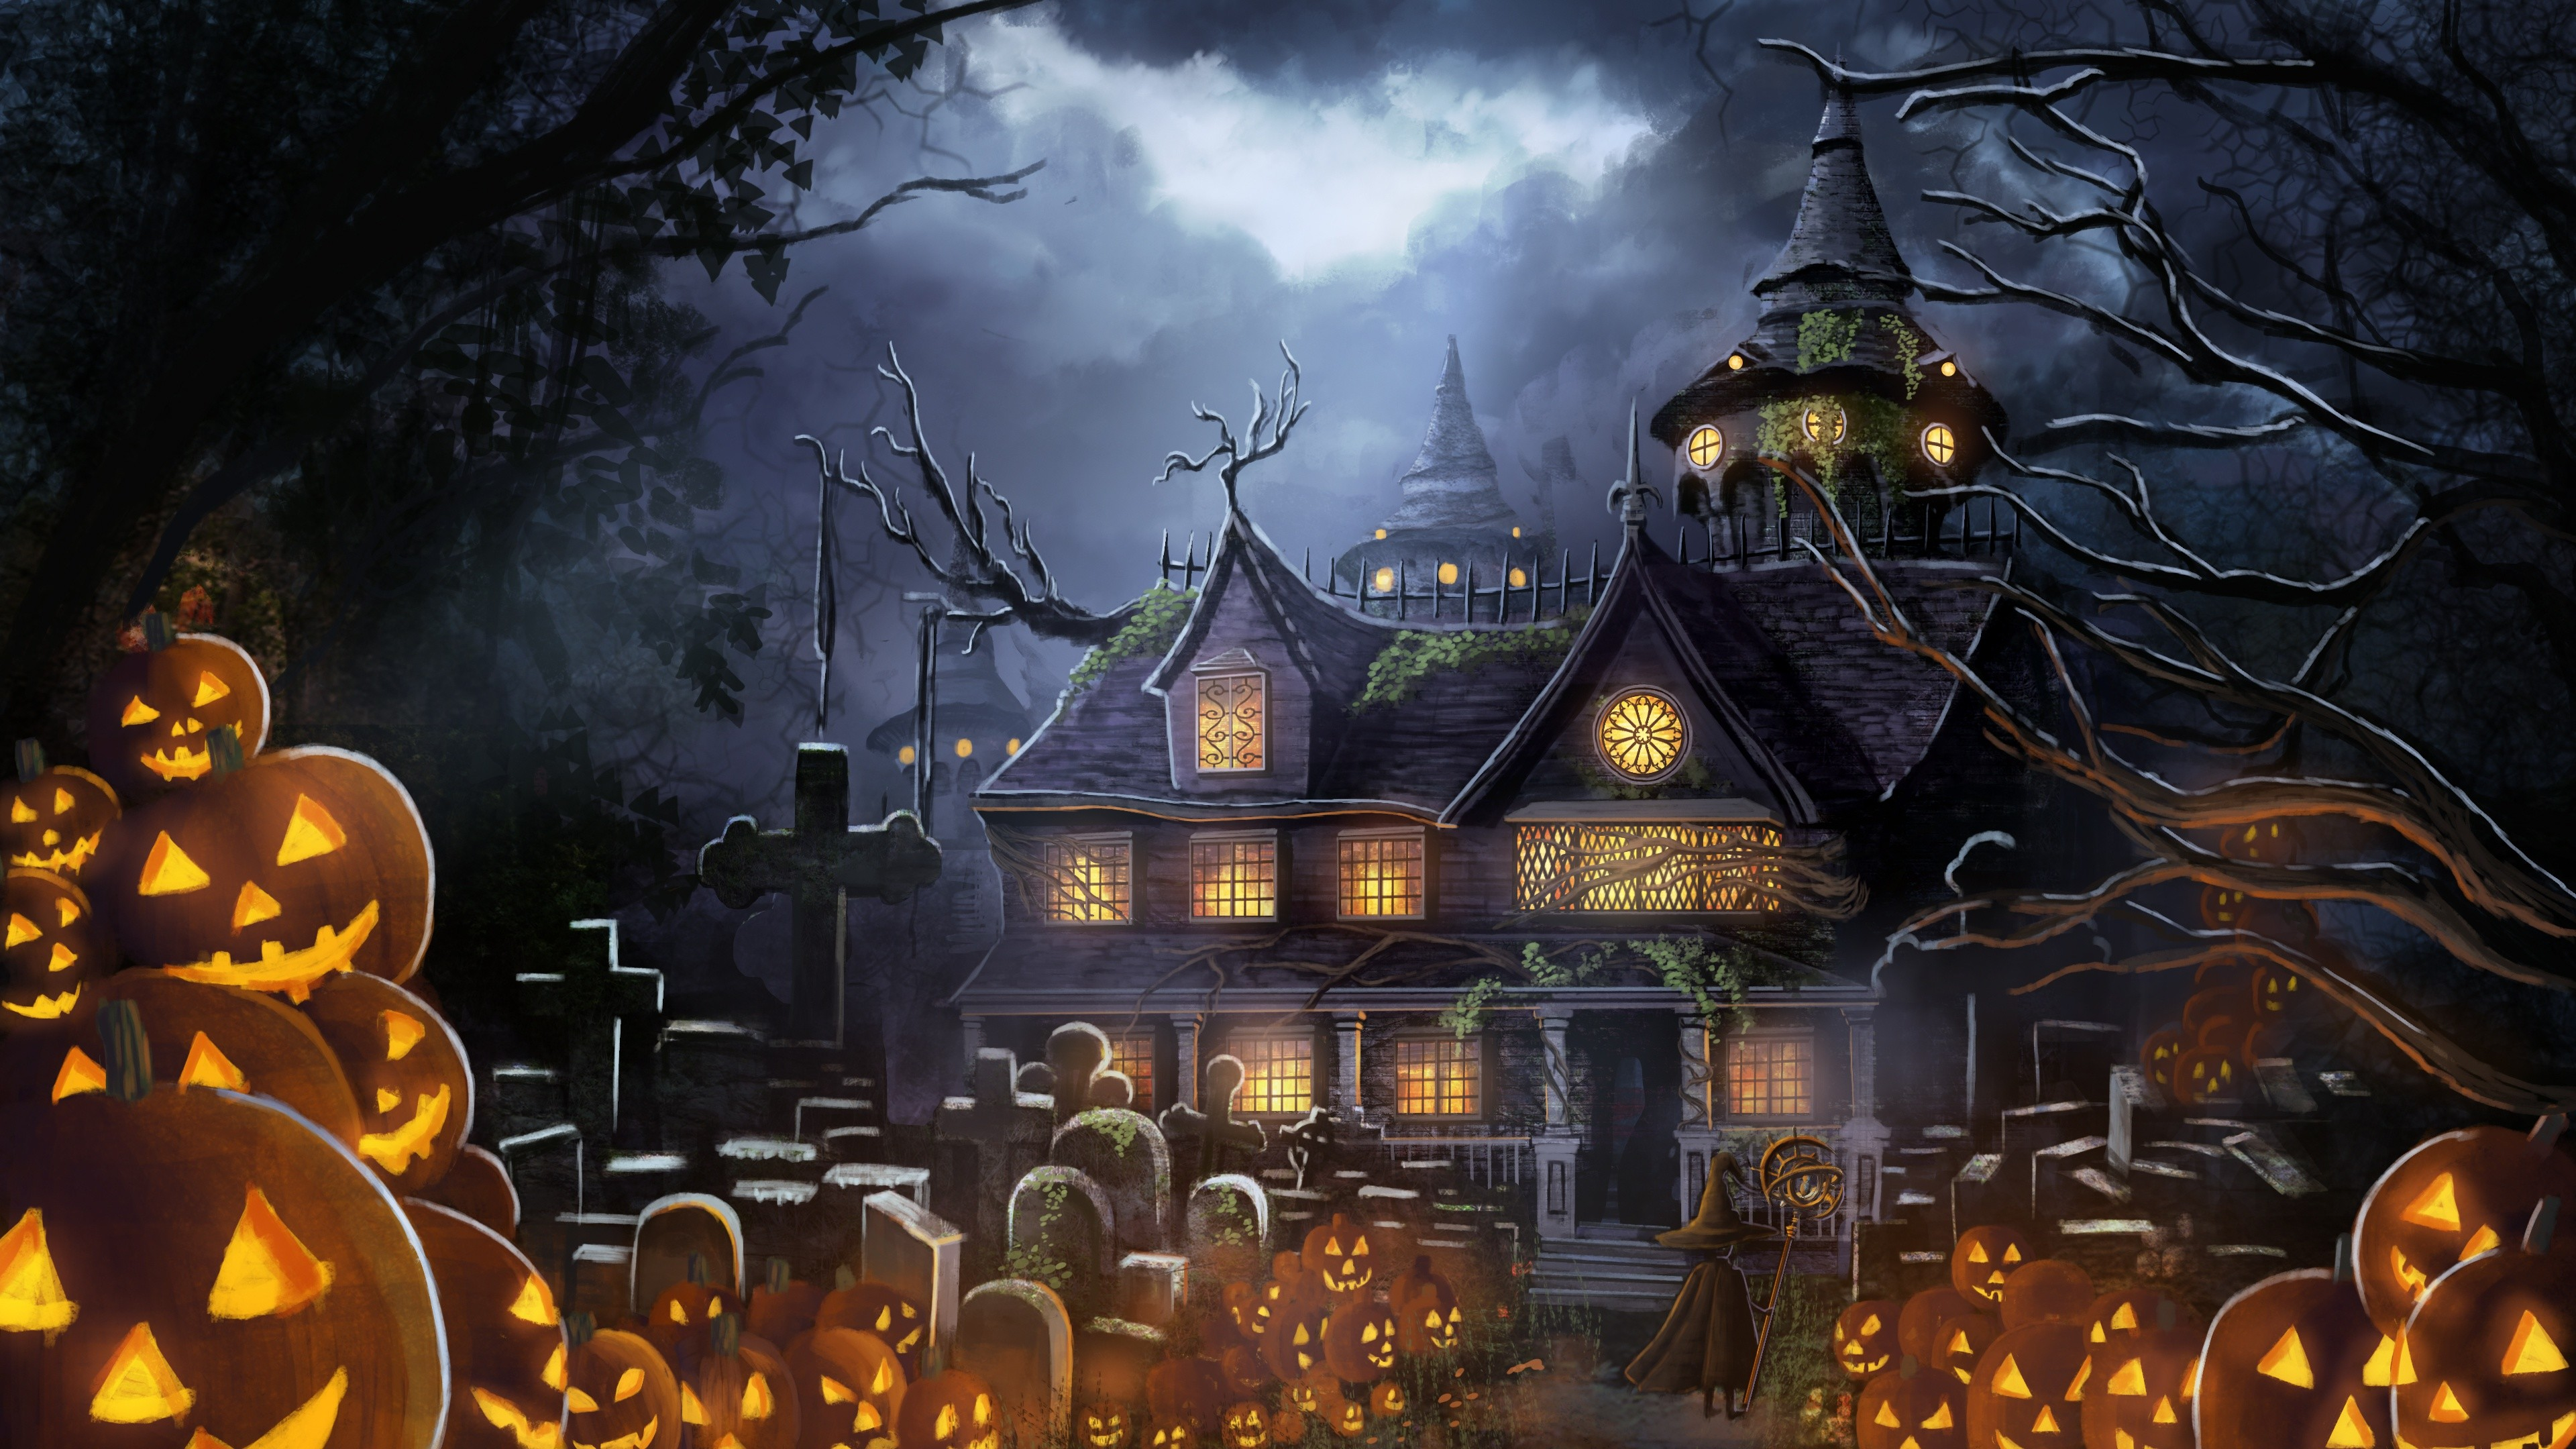 Fall Graveyard Cemetery Wallpaper Halloween Pc Wallpapers 67 Background Pictures